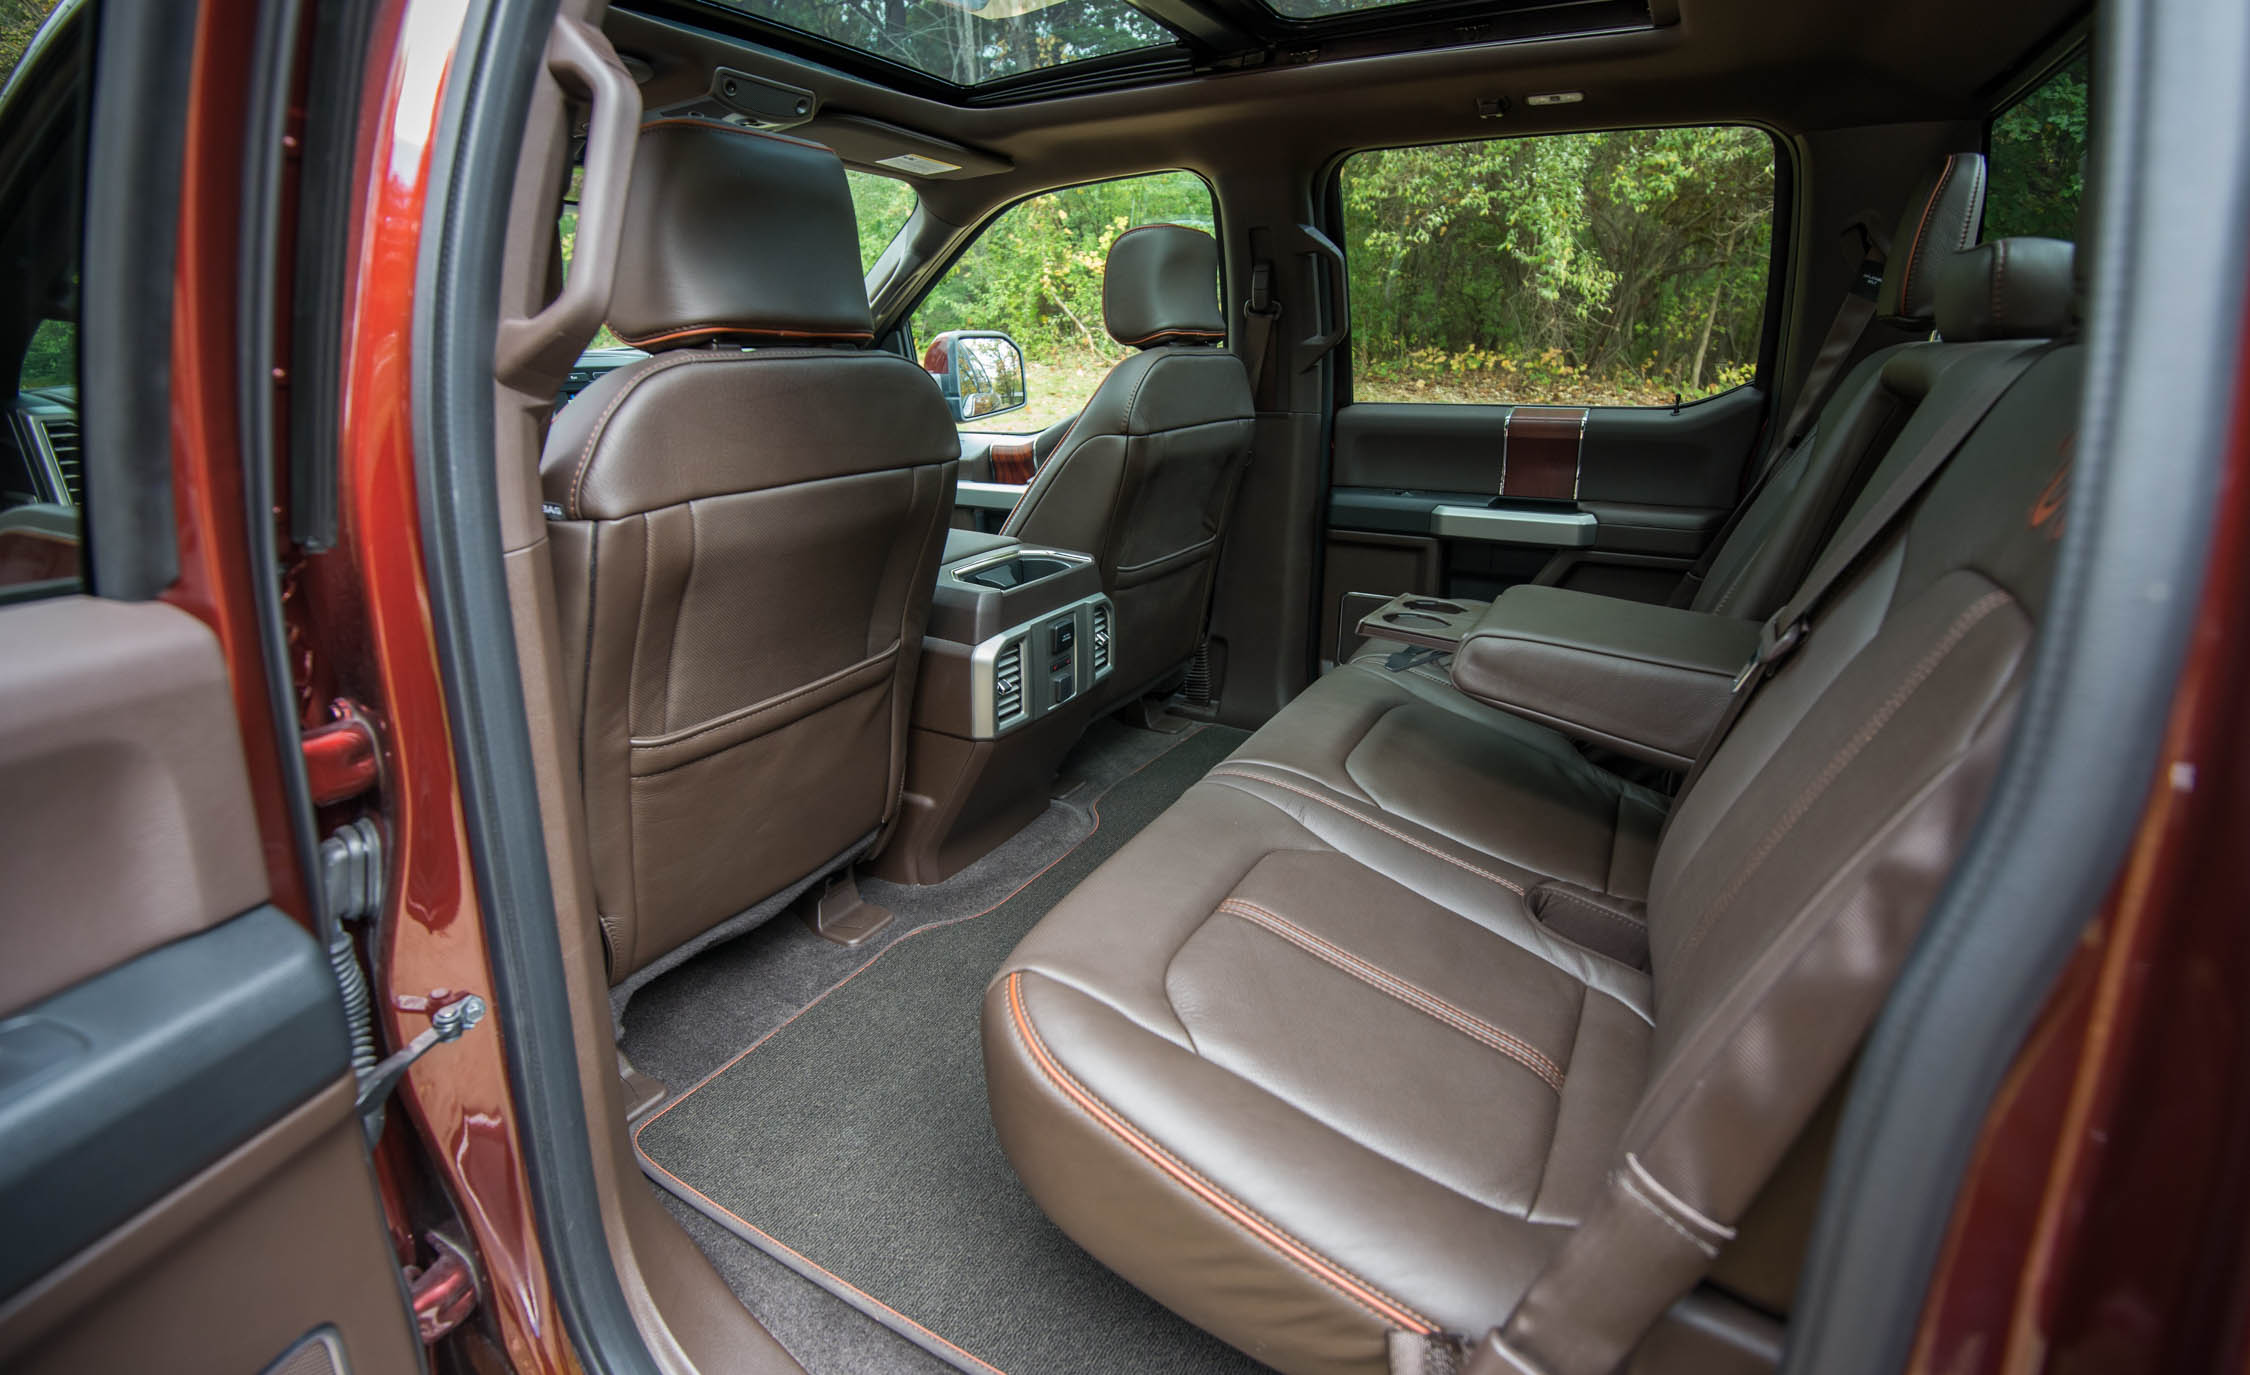 2017 Ford F 150 King Ranch Interior Seats Rear (Photo 34 of 50)